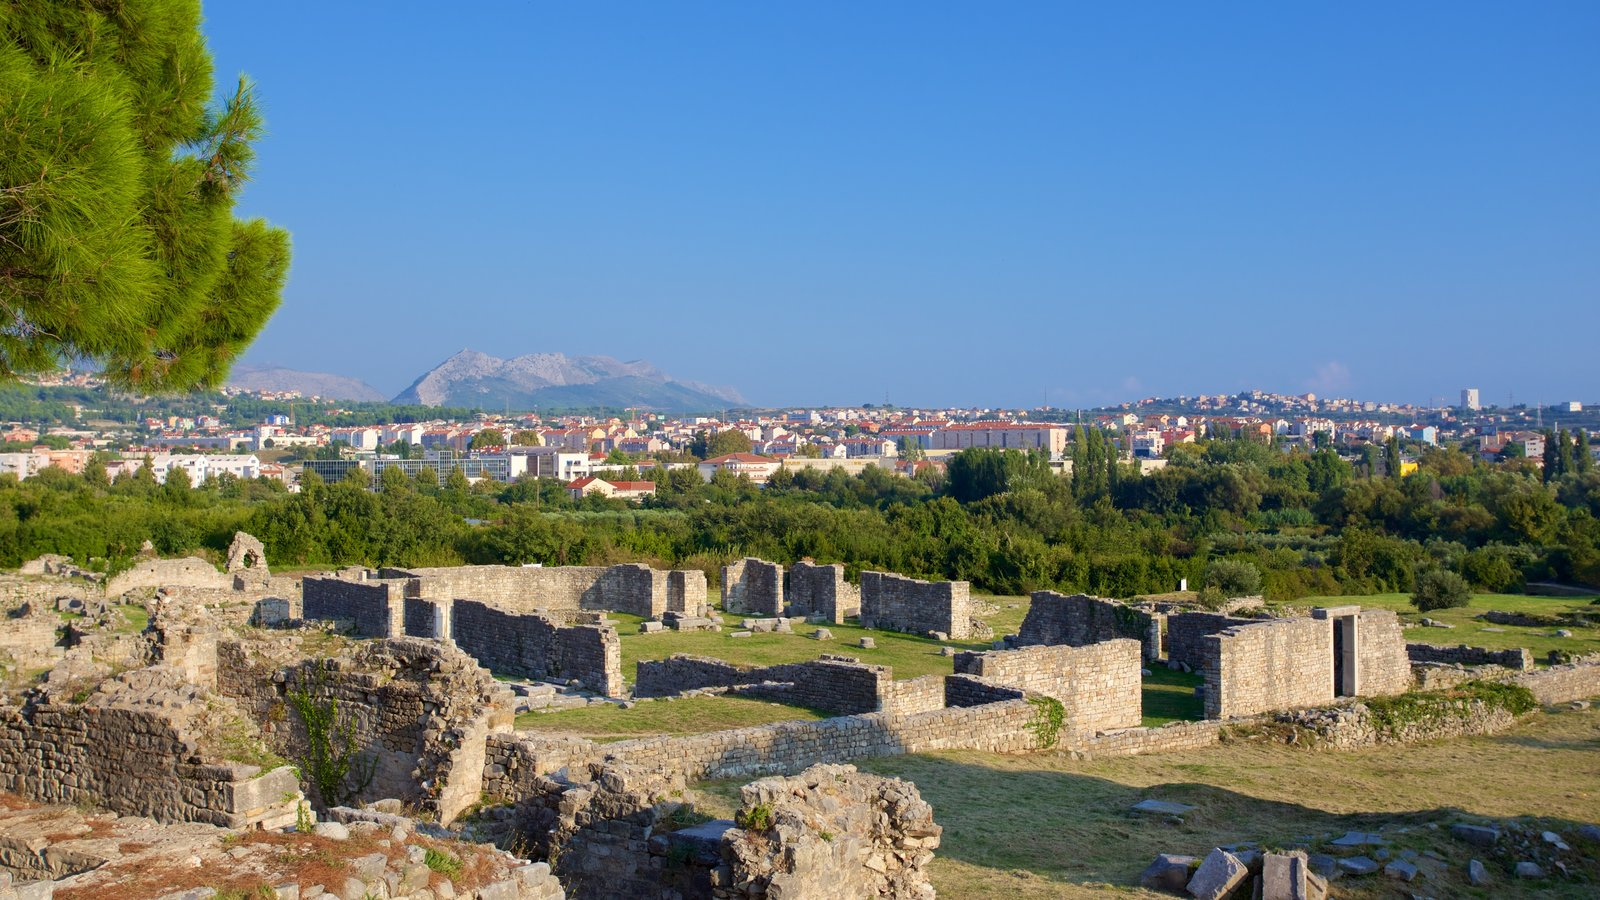 Salona Ruins showing tranquil scenes and a ruin